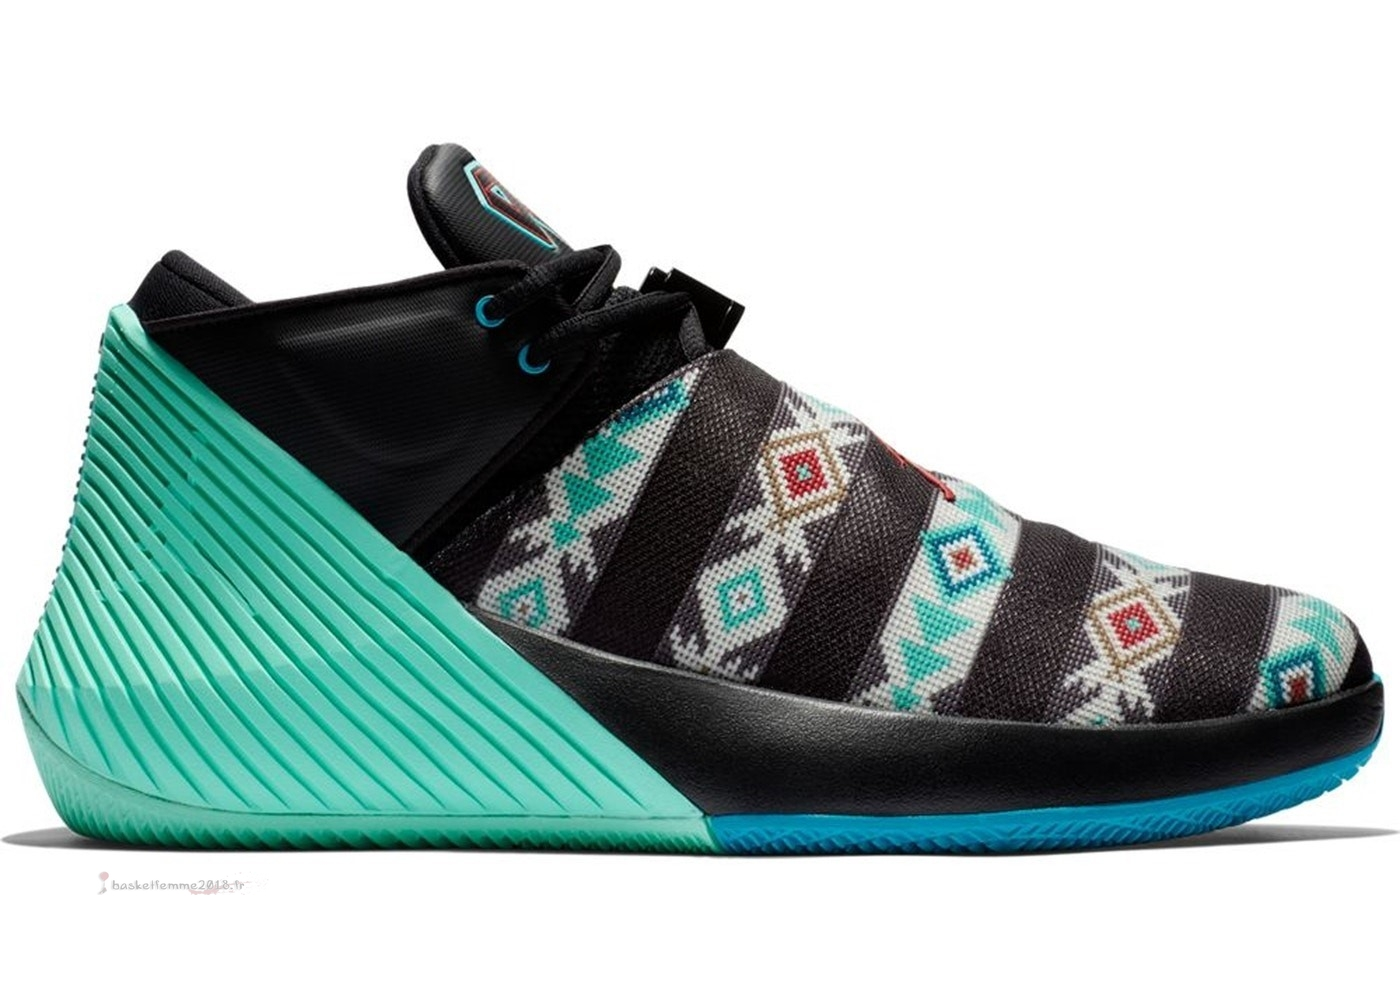 Jordan Why Not Zer0.1 Low N7 Noir Vert (bq2383-001) Chaussure de Basket